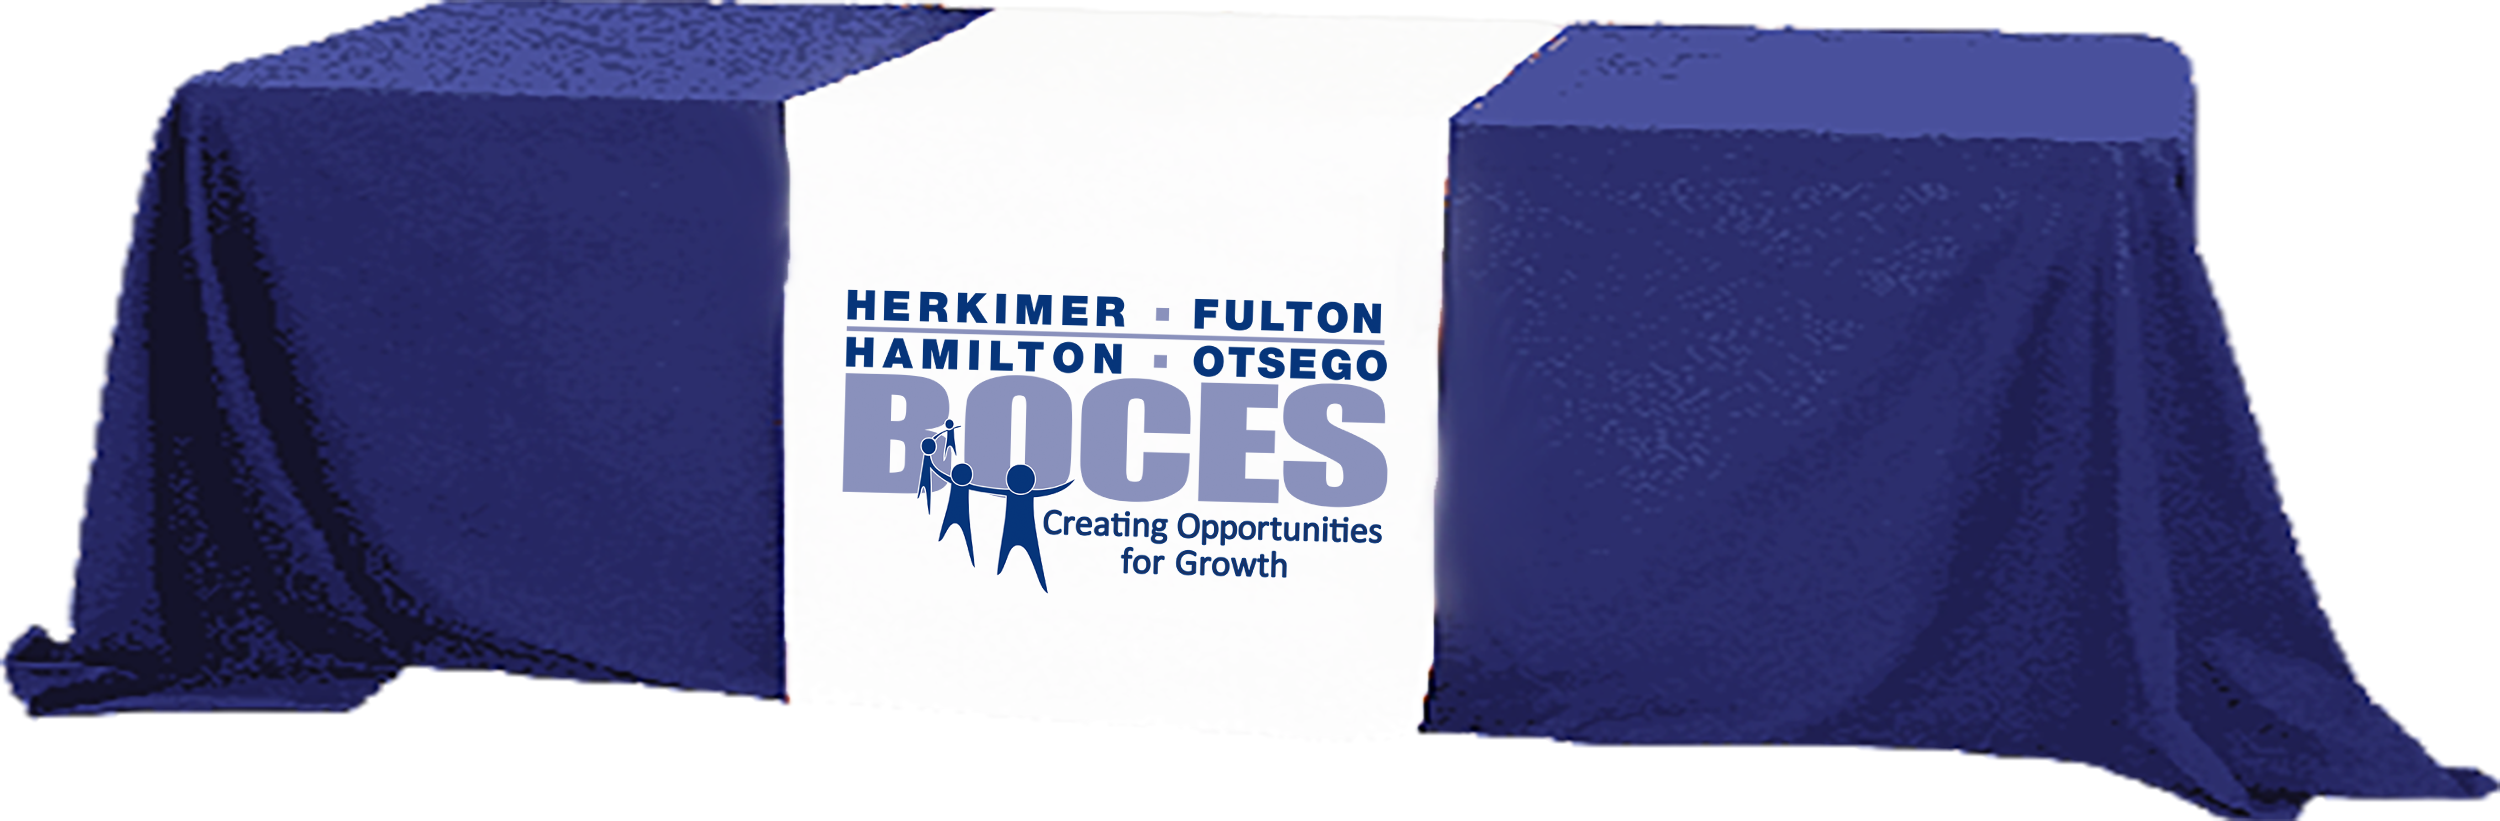 Herkimer BOCES logo on a table cover over a table image